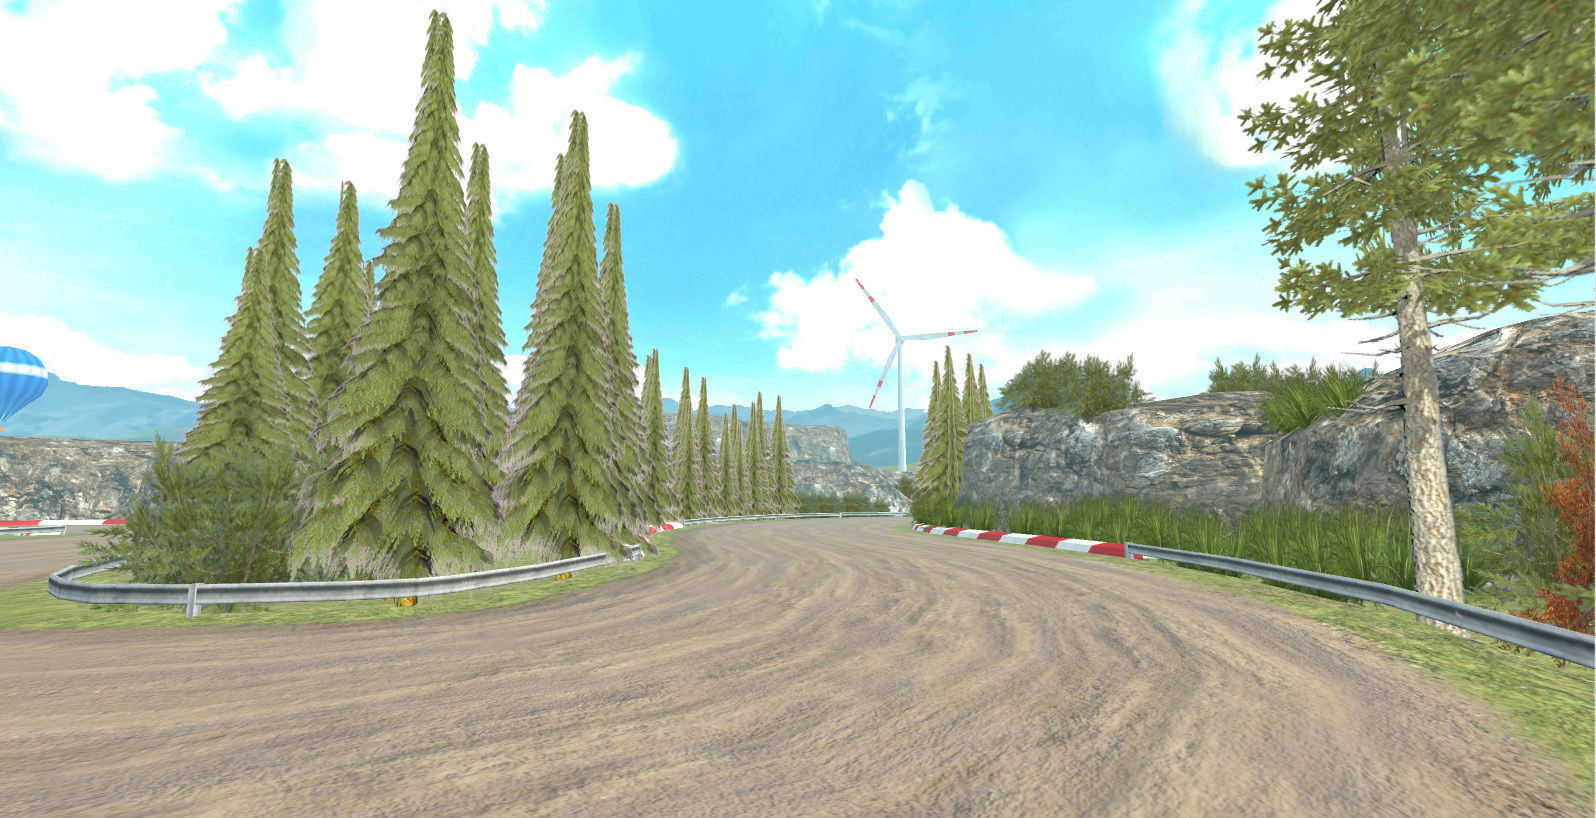 Race Rally Track Road Environment Pack For Mobile Games Unity3d | 3D model